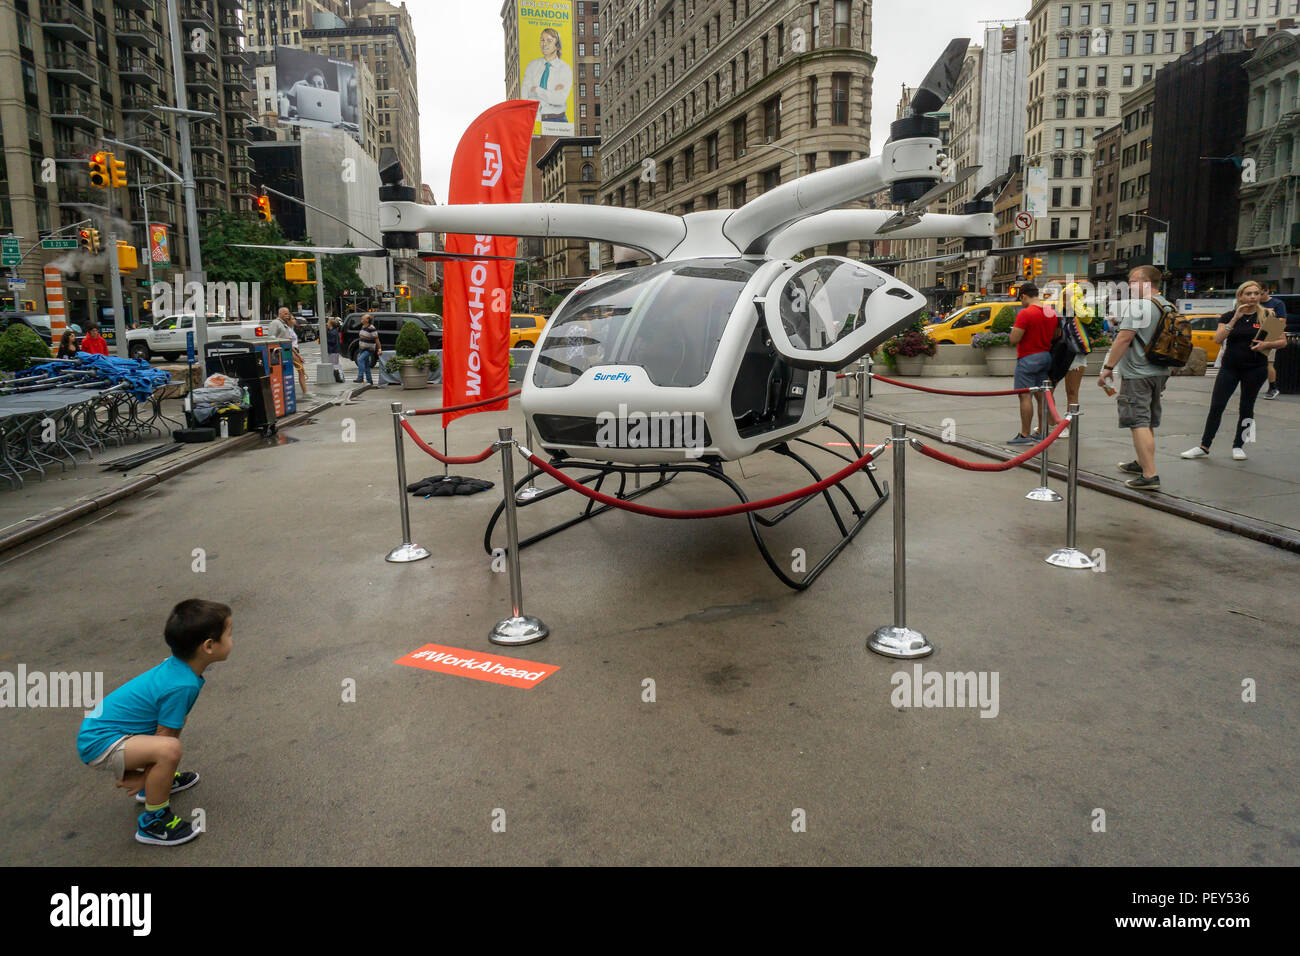 A Workhorse SureFly electric helicopter on display at a